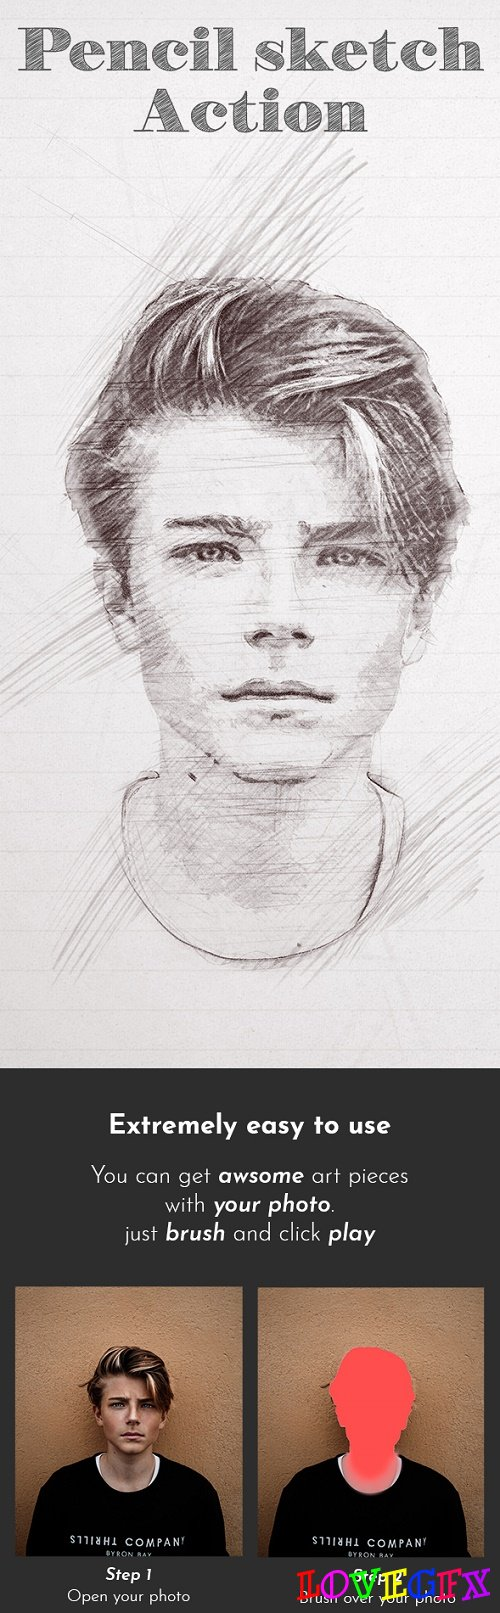 Pencil Sketch Photoshop Action 22055959